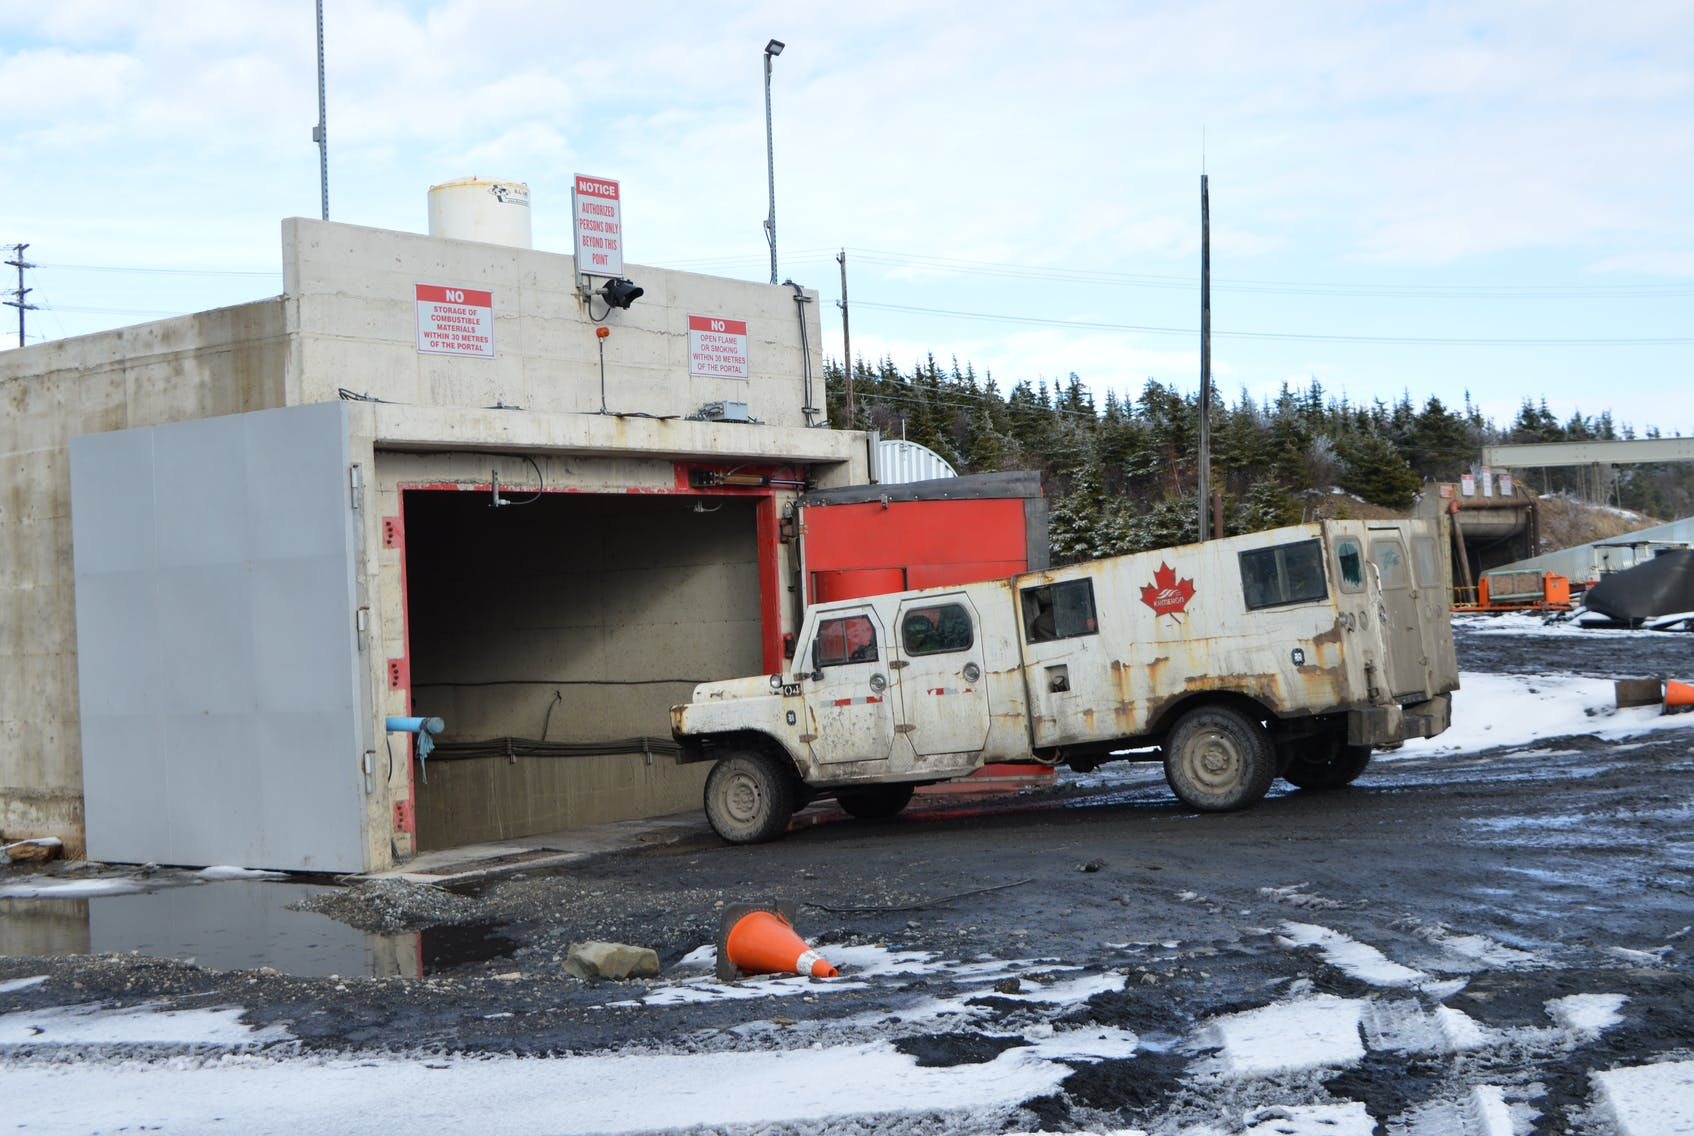 A mine vehicle heads into the Kameron Coal-owned Donkin Mine in this file photo. Nova Scotia political parties aim to end the use of coal in power production to reduce carbon emissions. - Sharon Montgomery